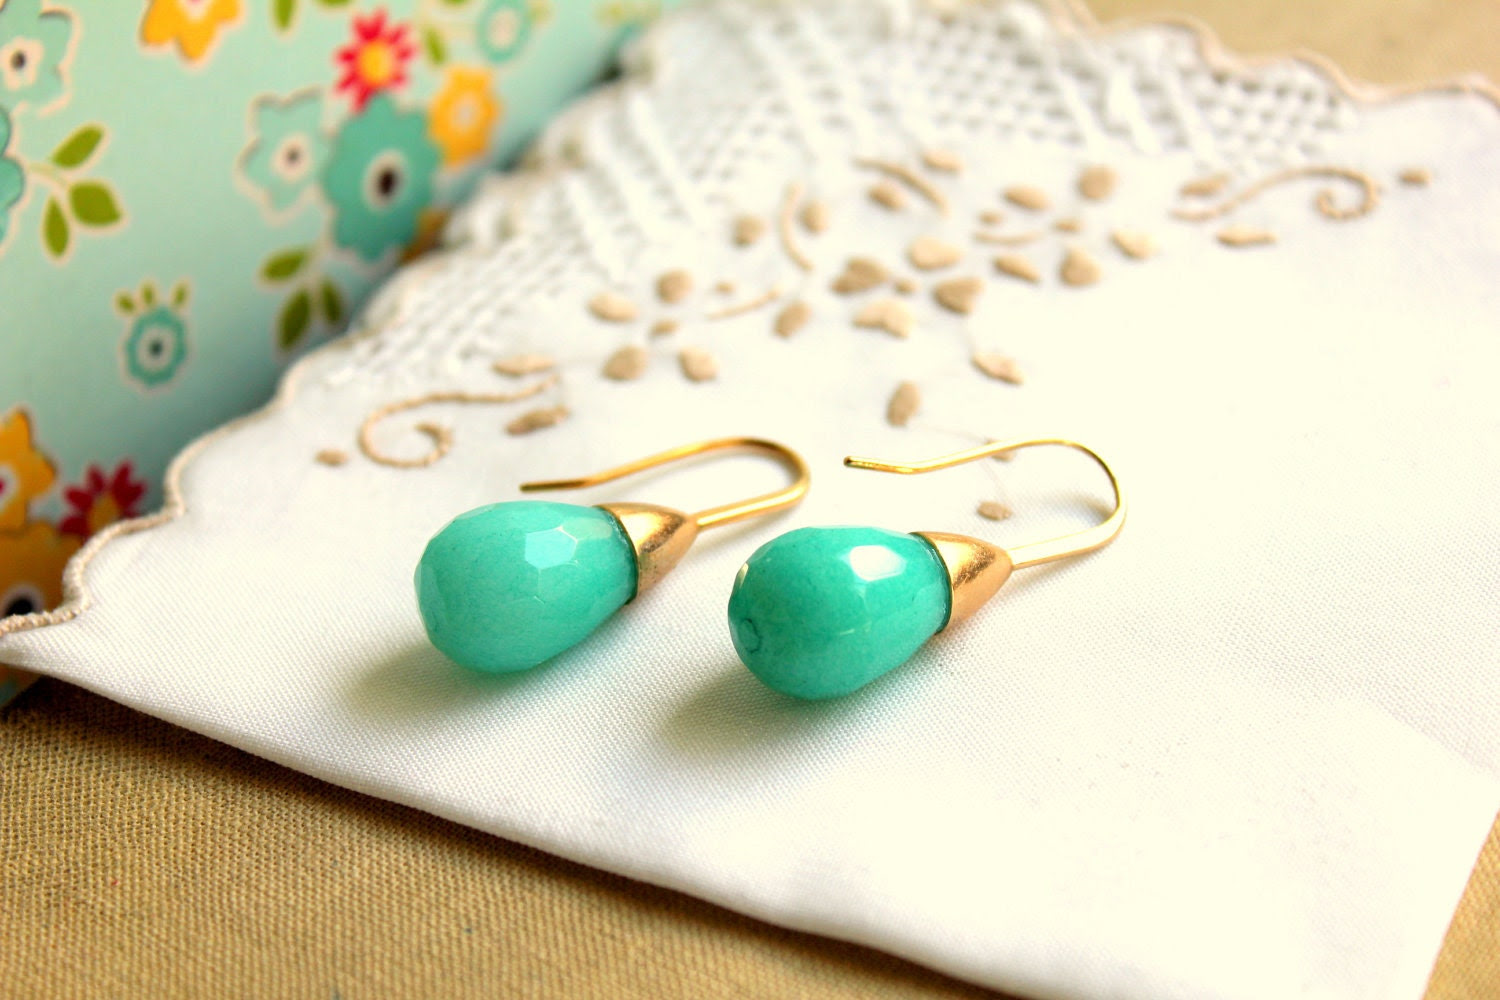 Jade earrings - real jade gemstone with goldfield earrings